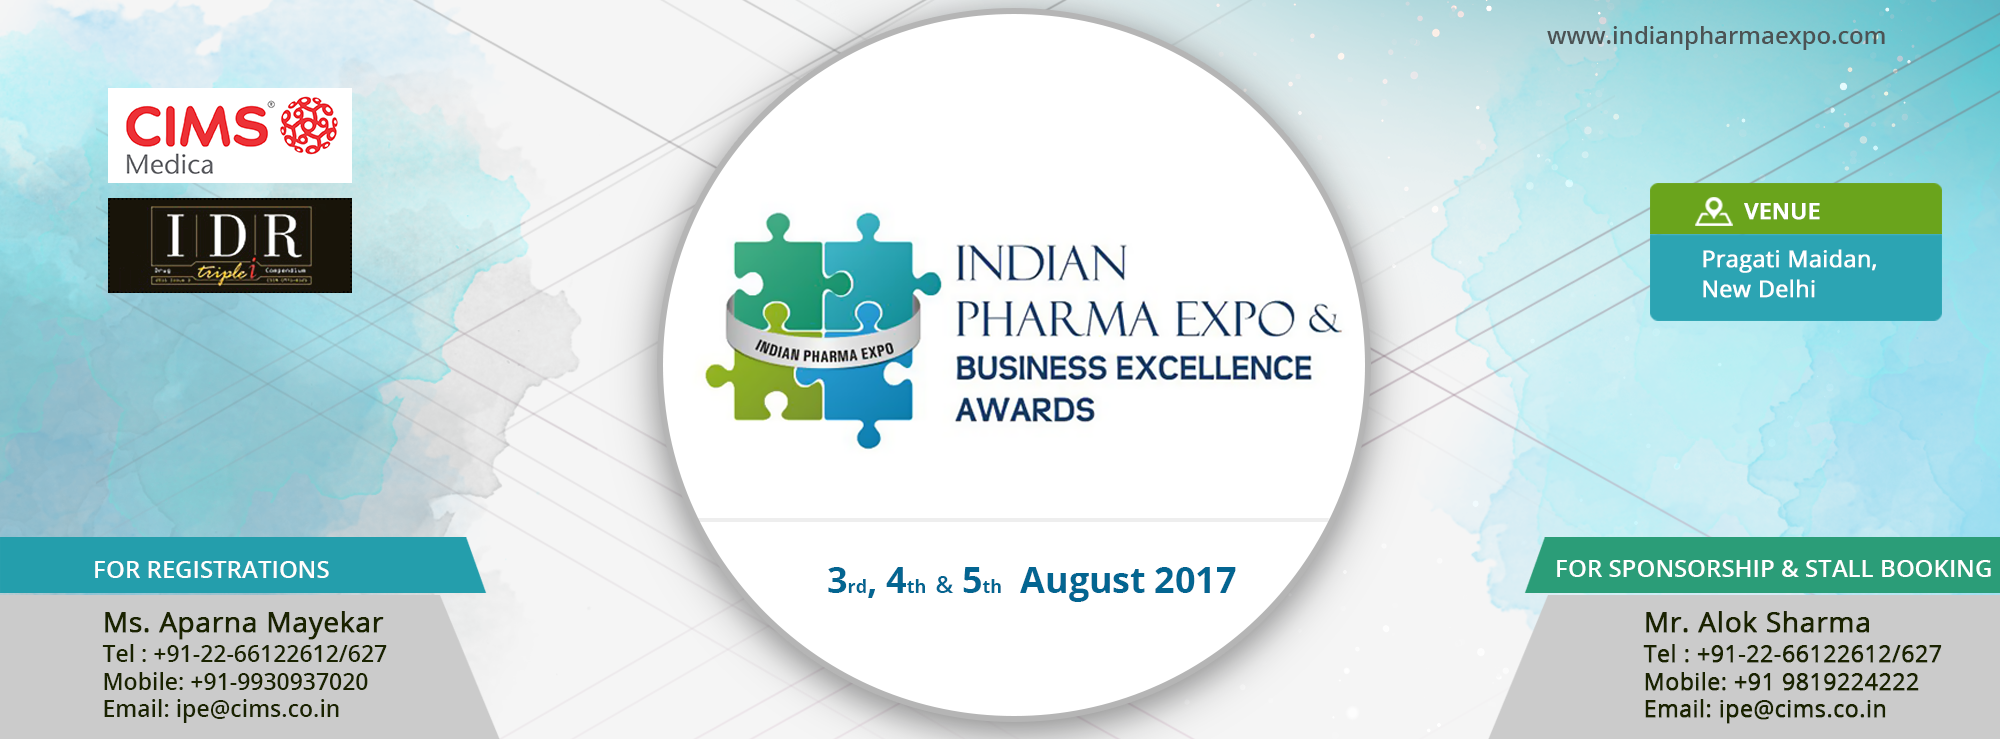 Indian Pharma Expo & Business Excellence Awards 2017